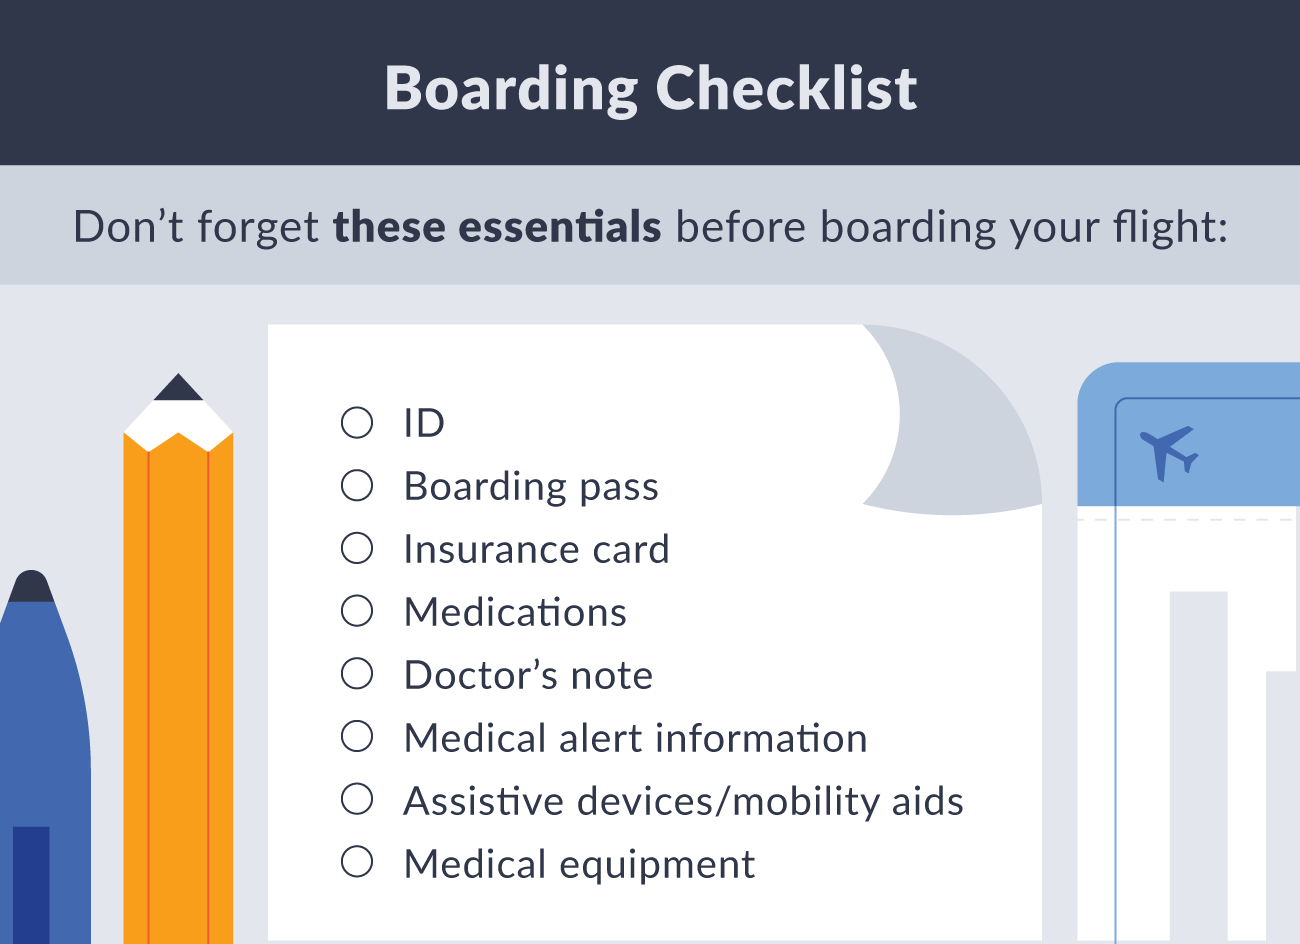 Boarding checklist essentials illustration.